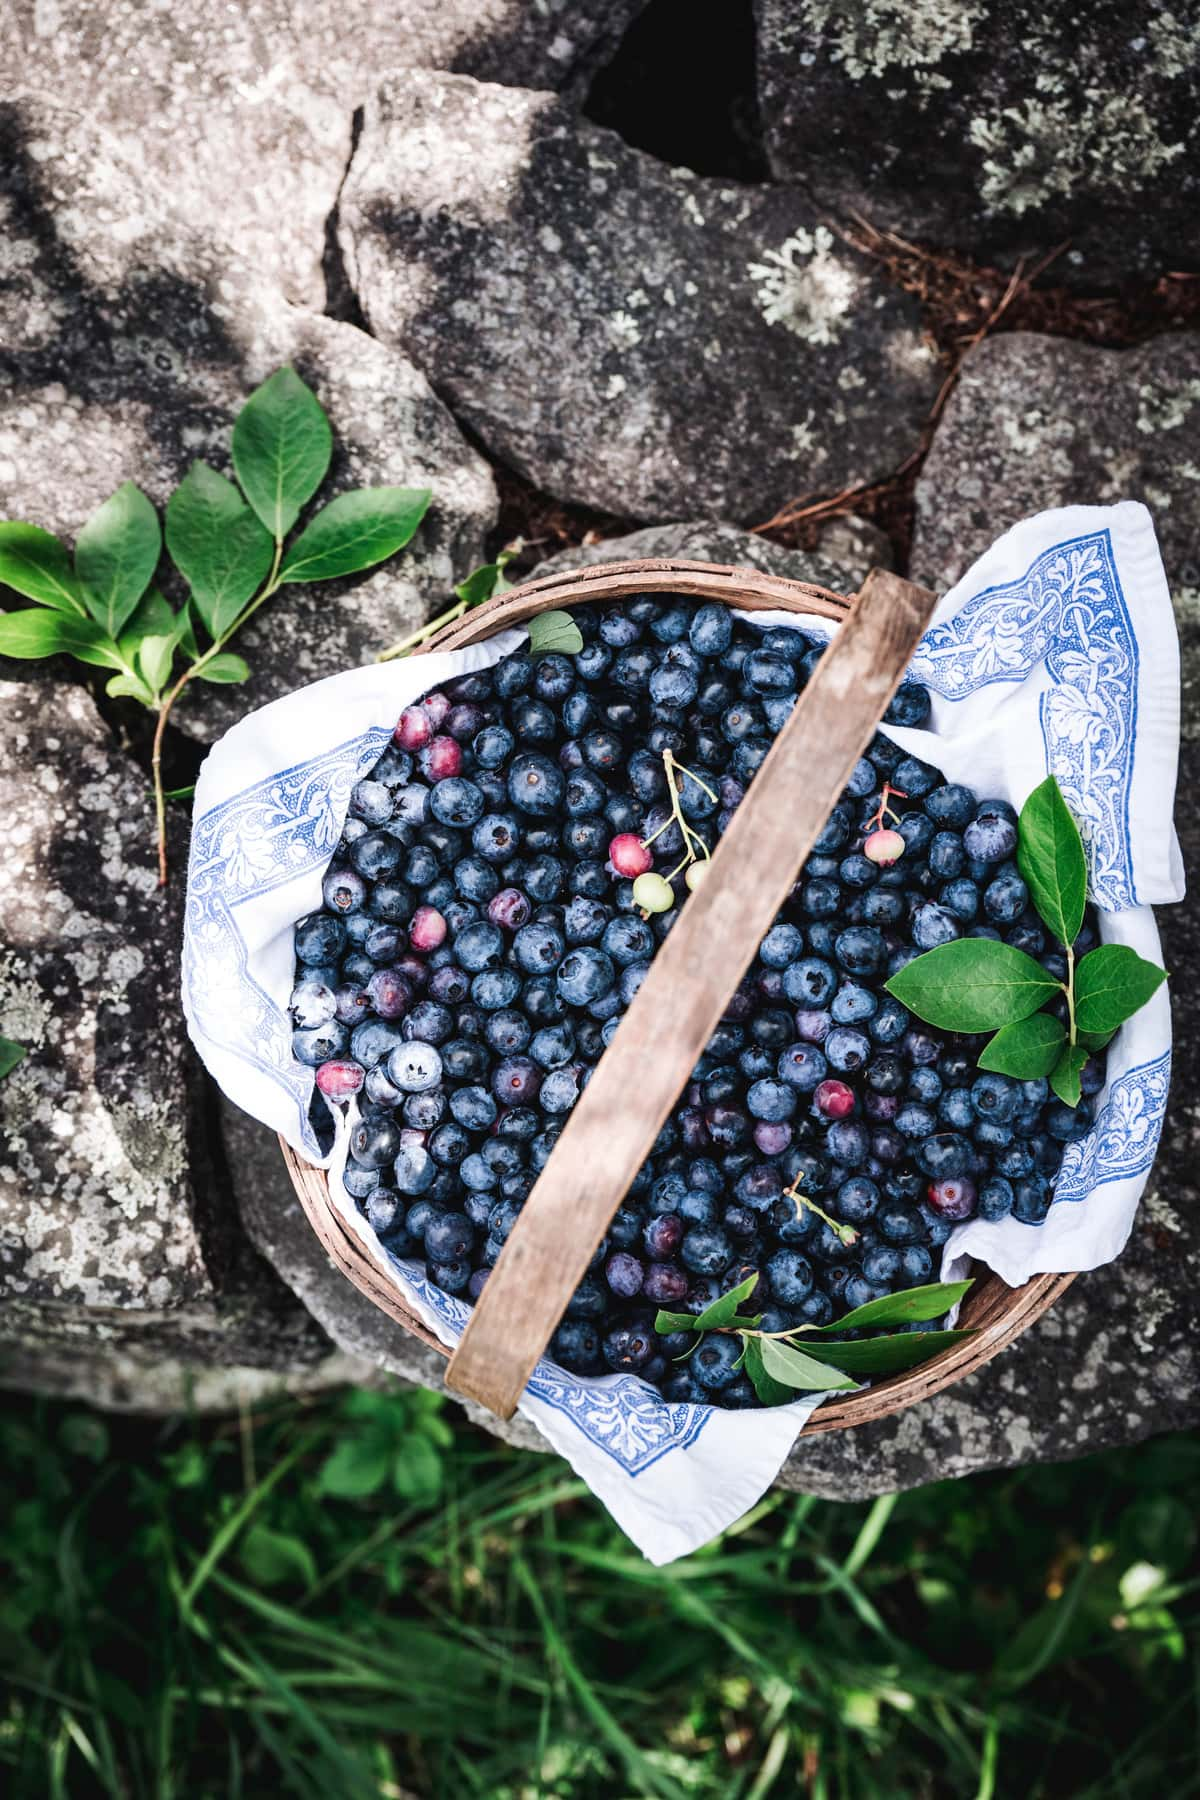 overhead view of blueberries in a basket on stone wall